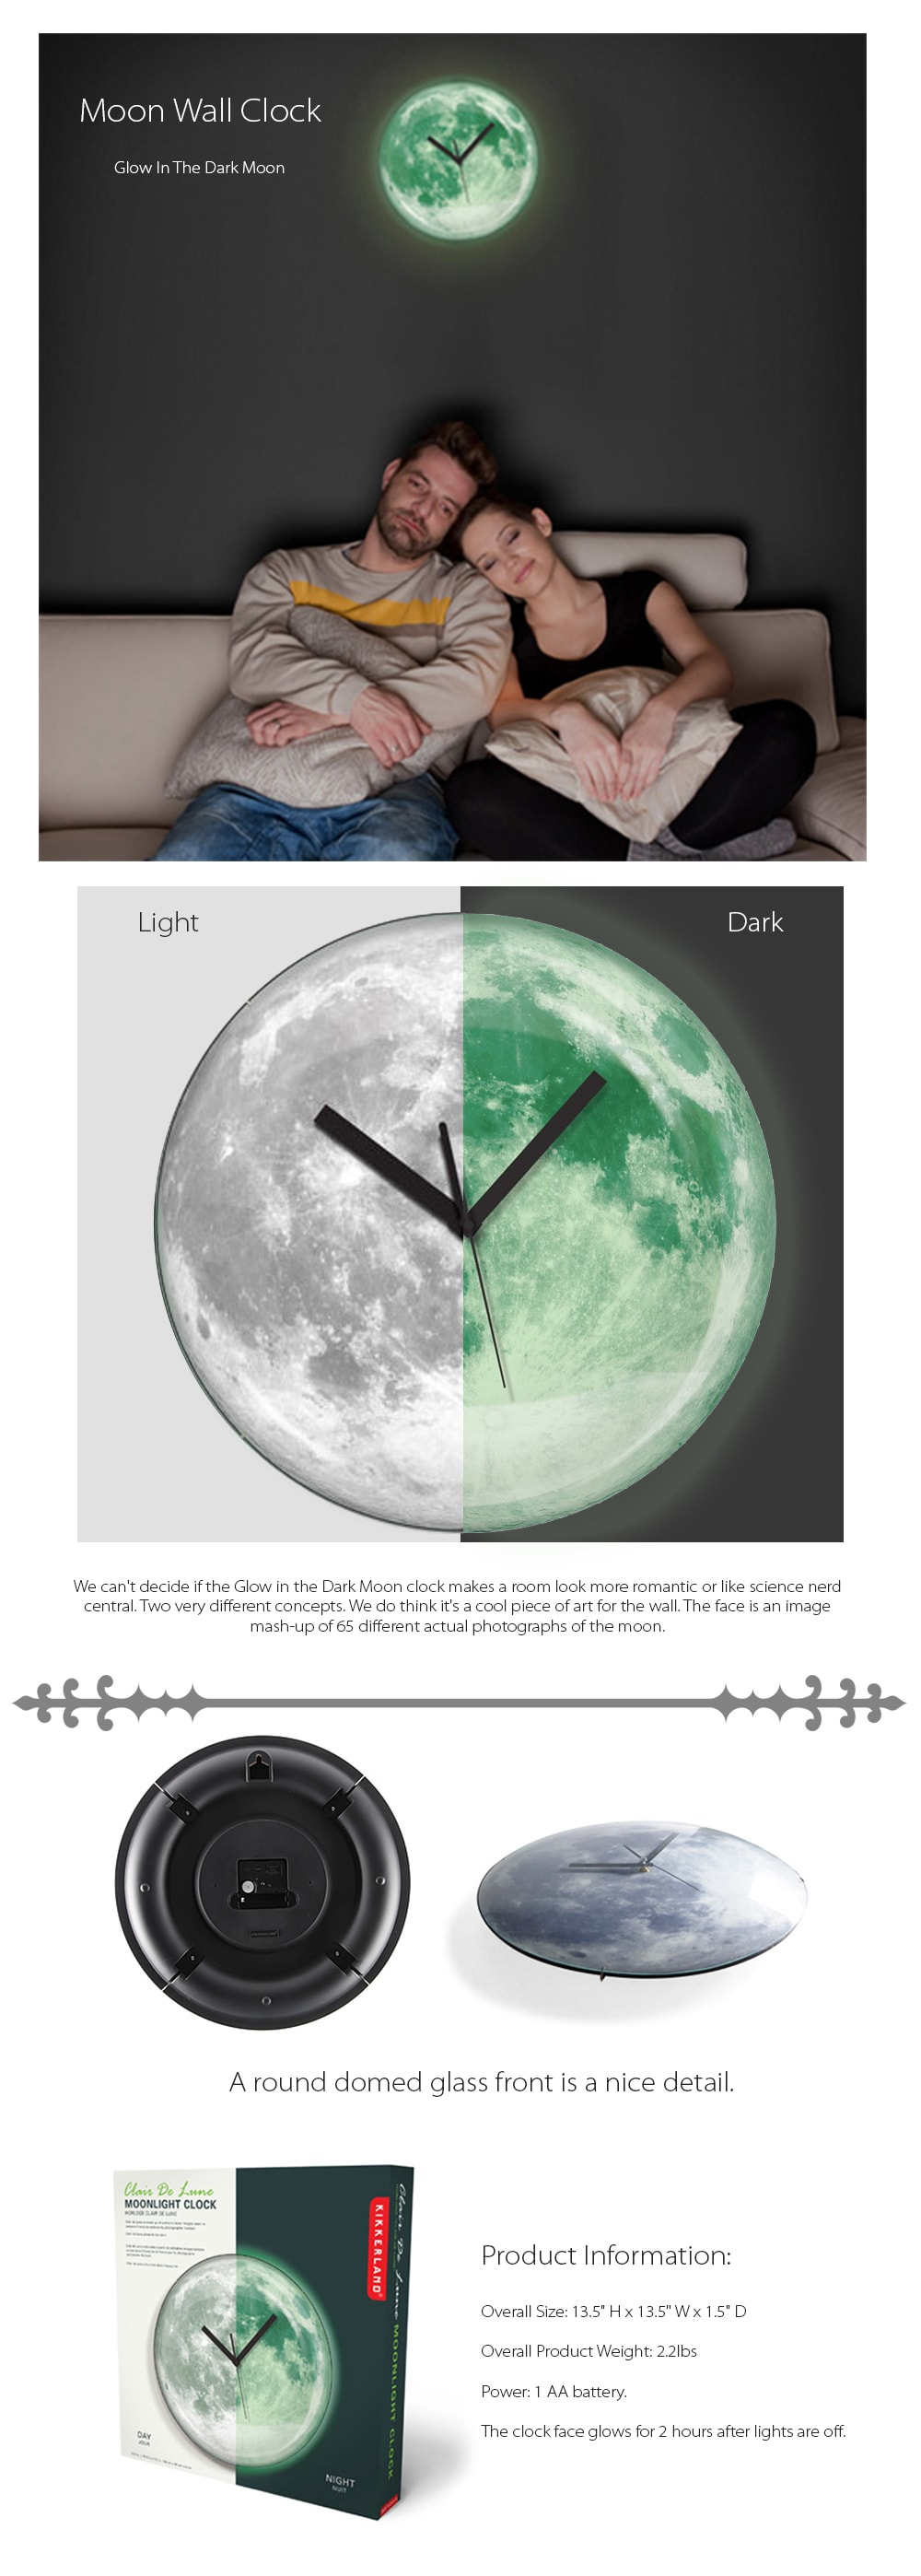 Moon Wall Clock Bring The Moon Back To Your Home